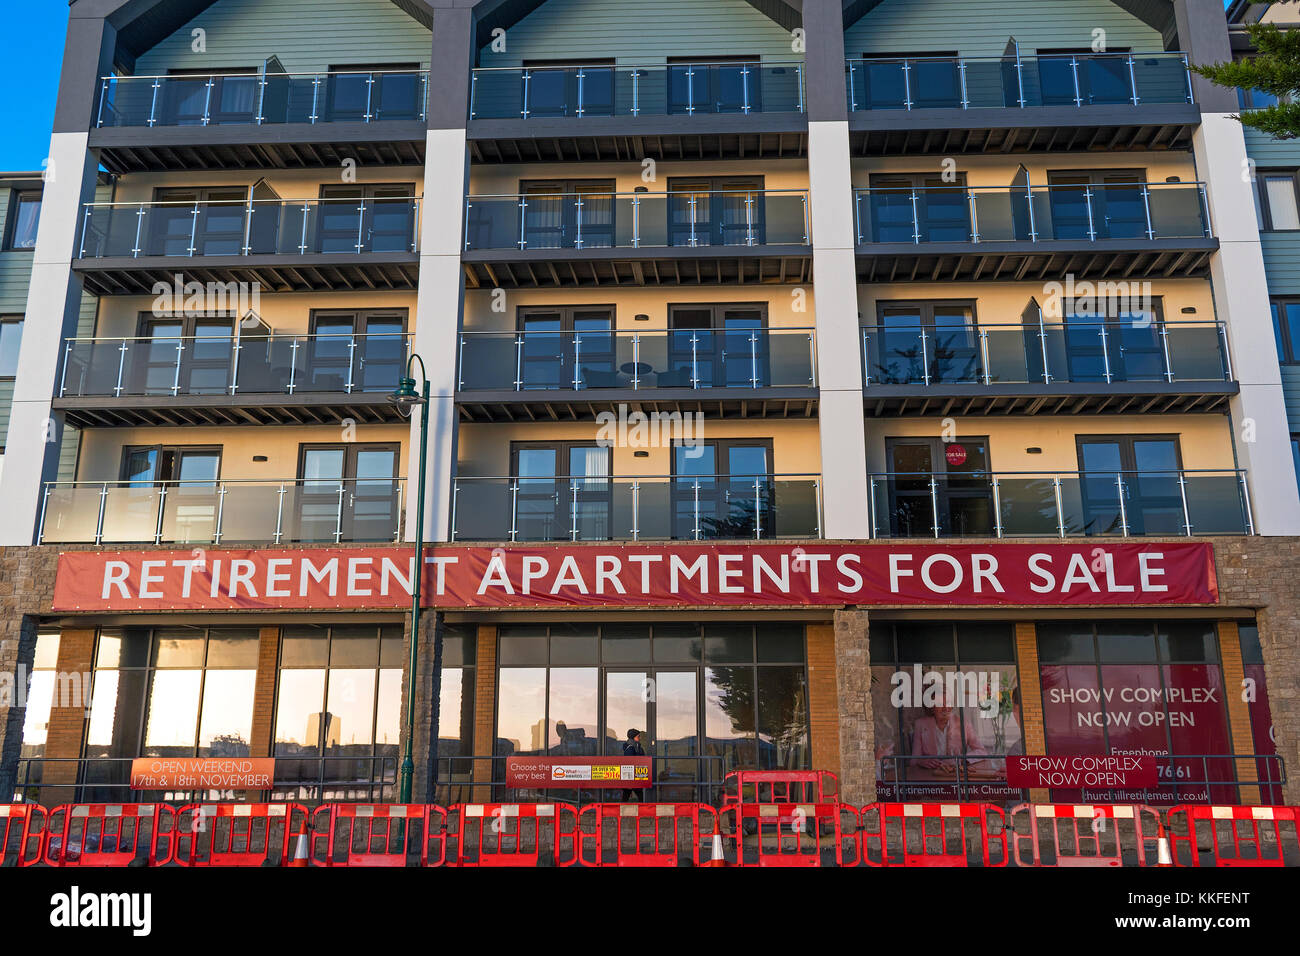 Apartments For Sale Stock Photos Apartments For Sale Stock Images